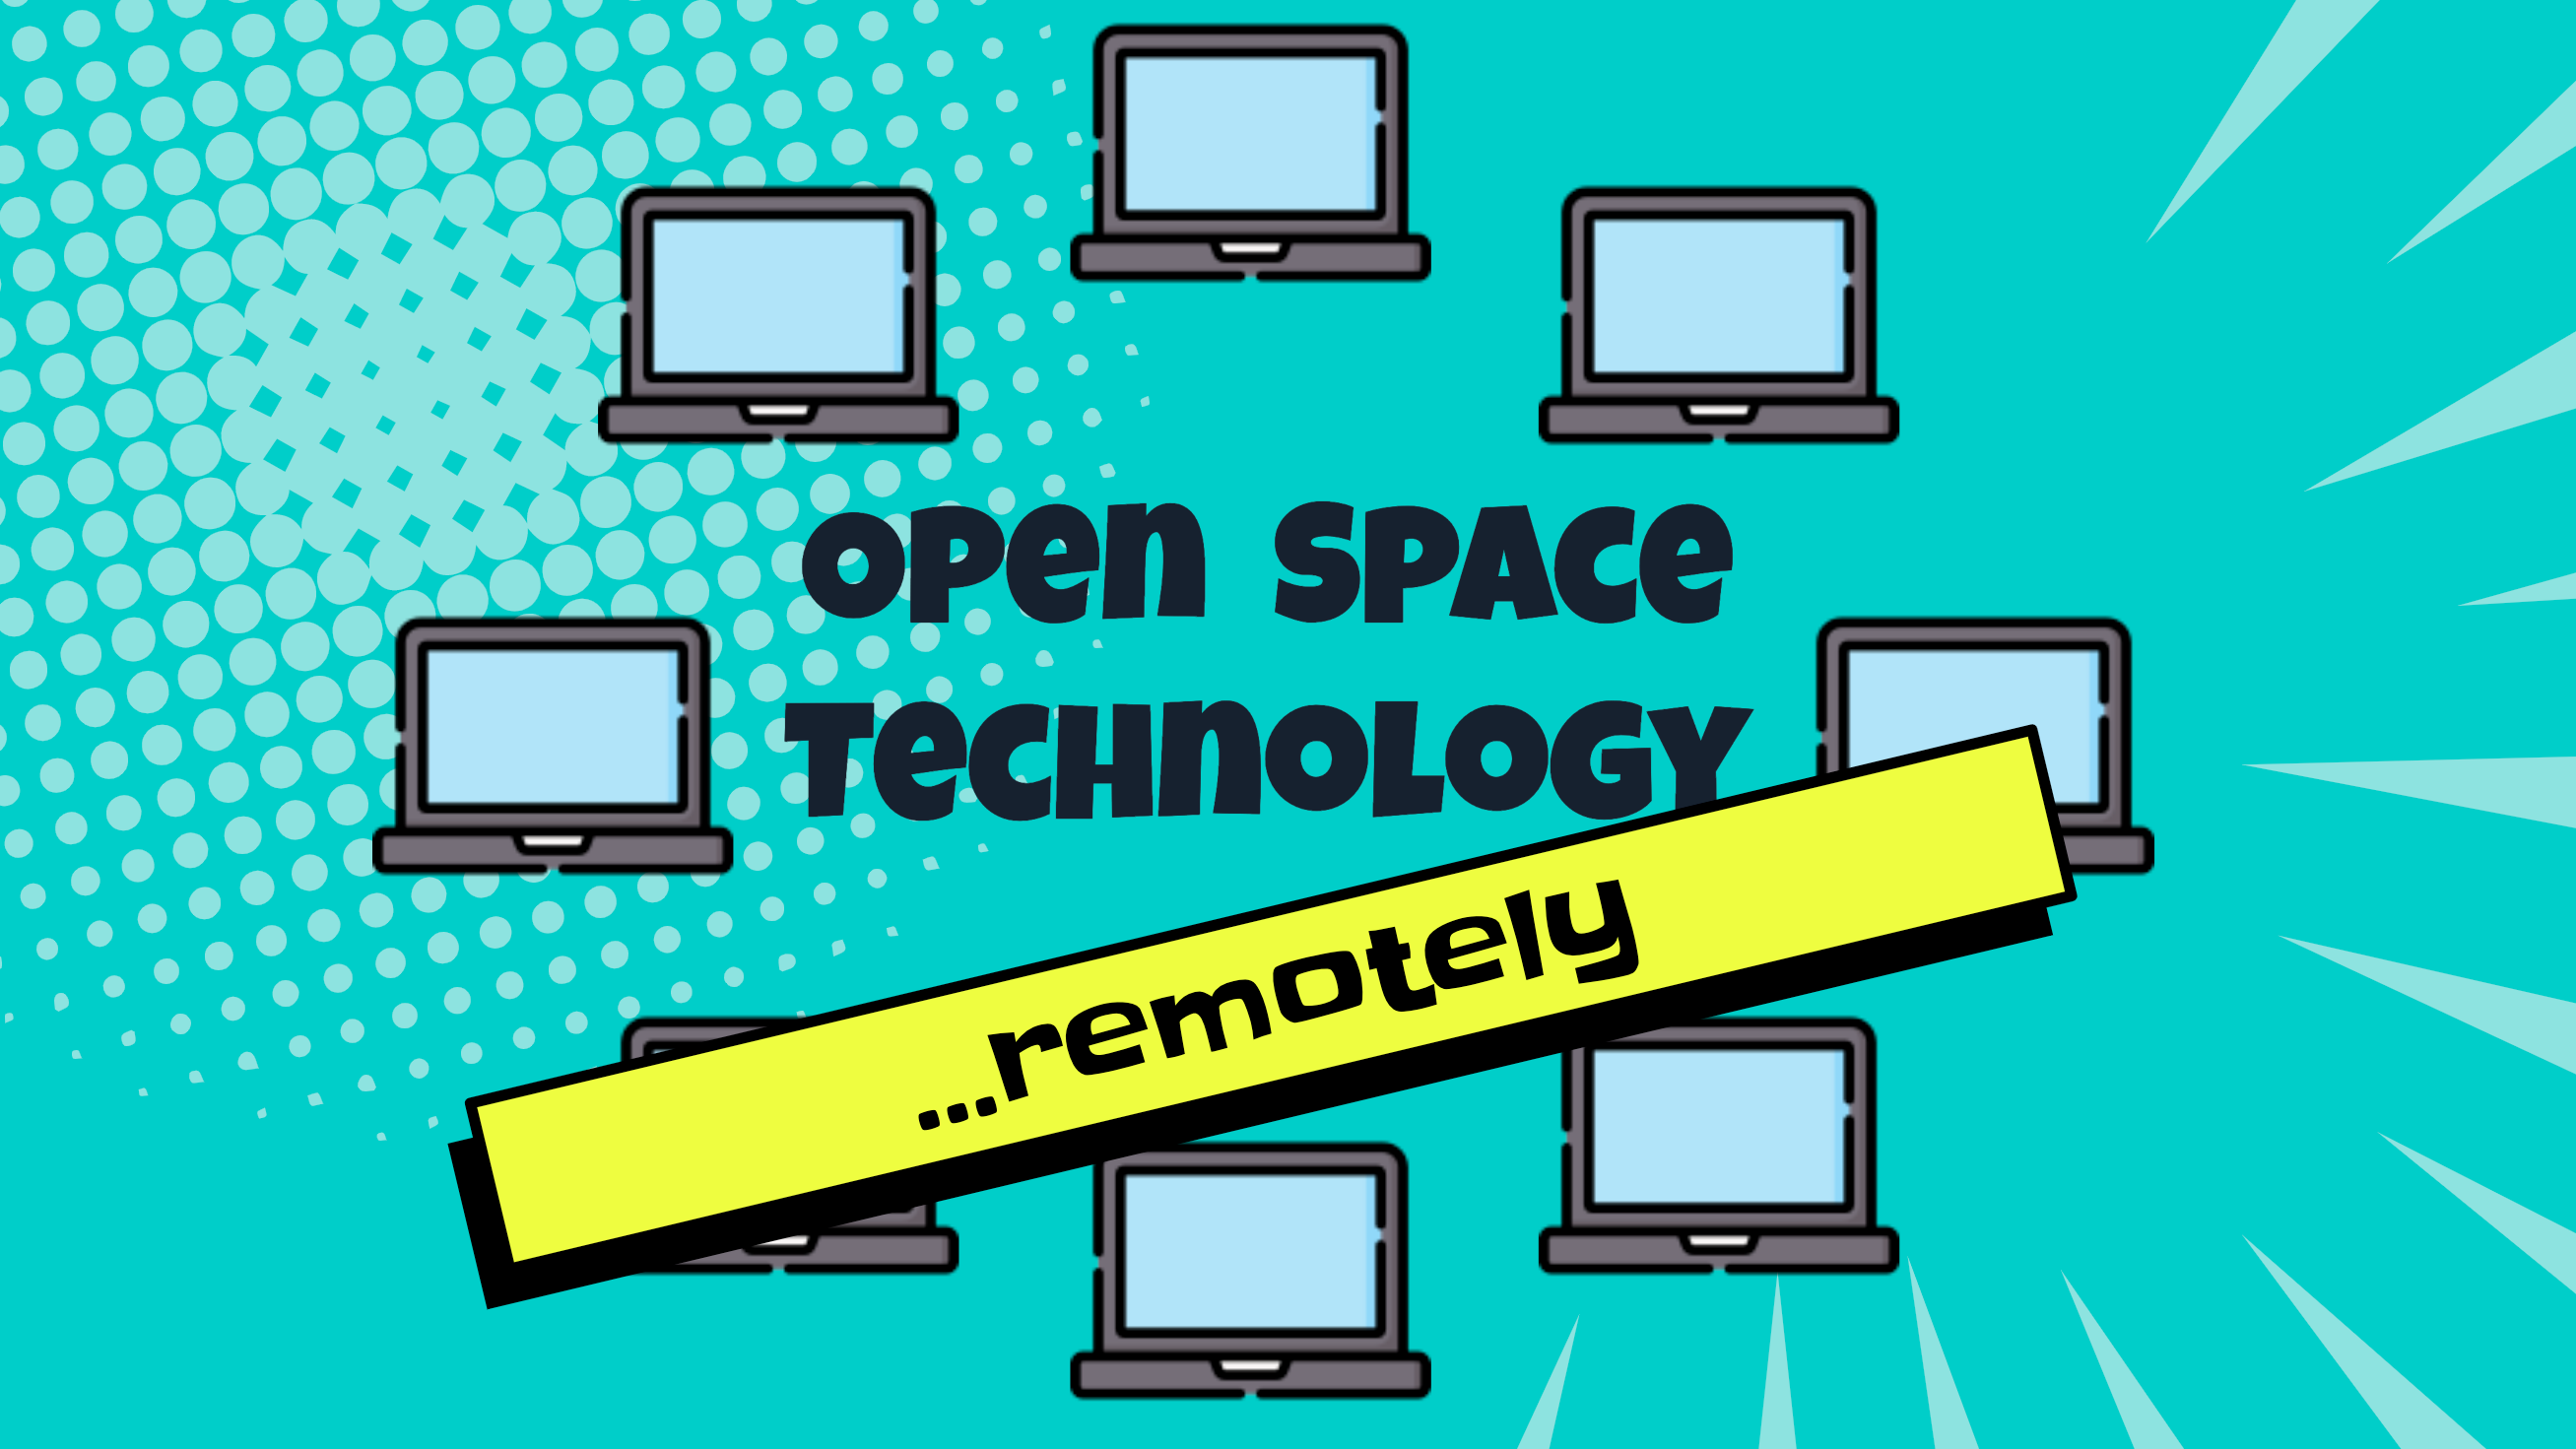 OpenSpace Technology